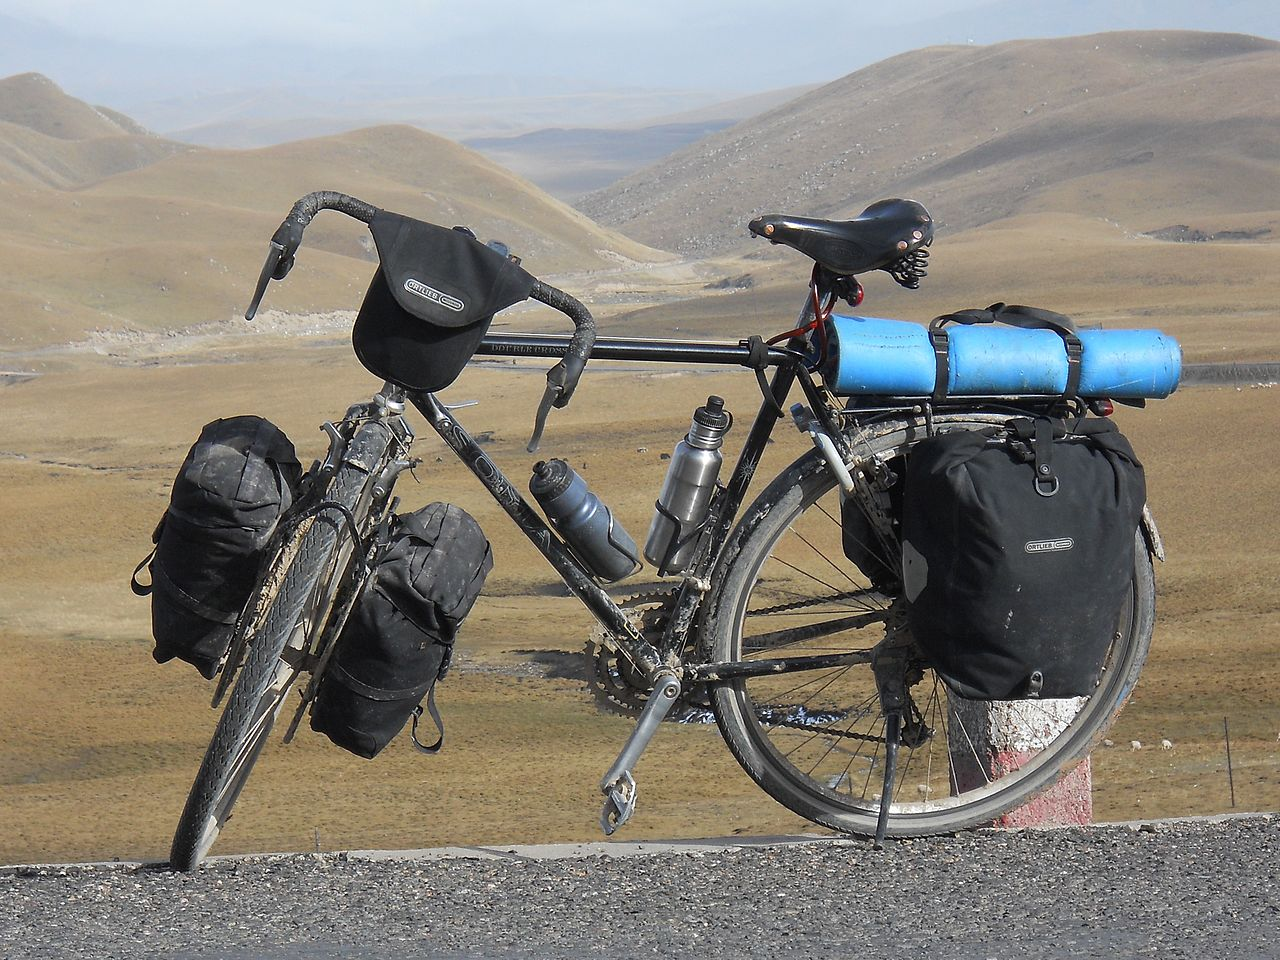 File:Loaded touring bicycle.JPG - Wikimedia Commons